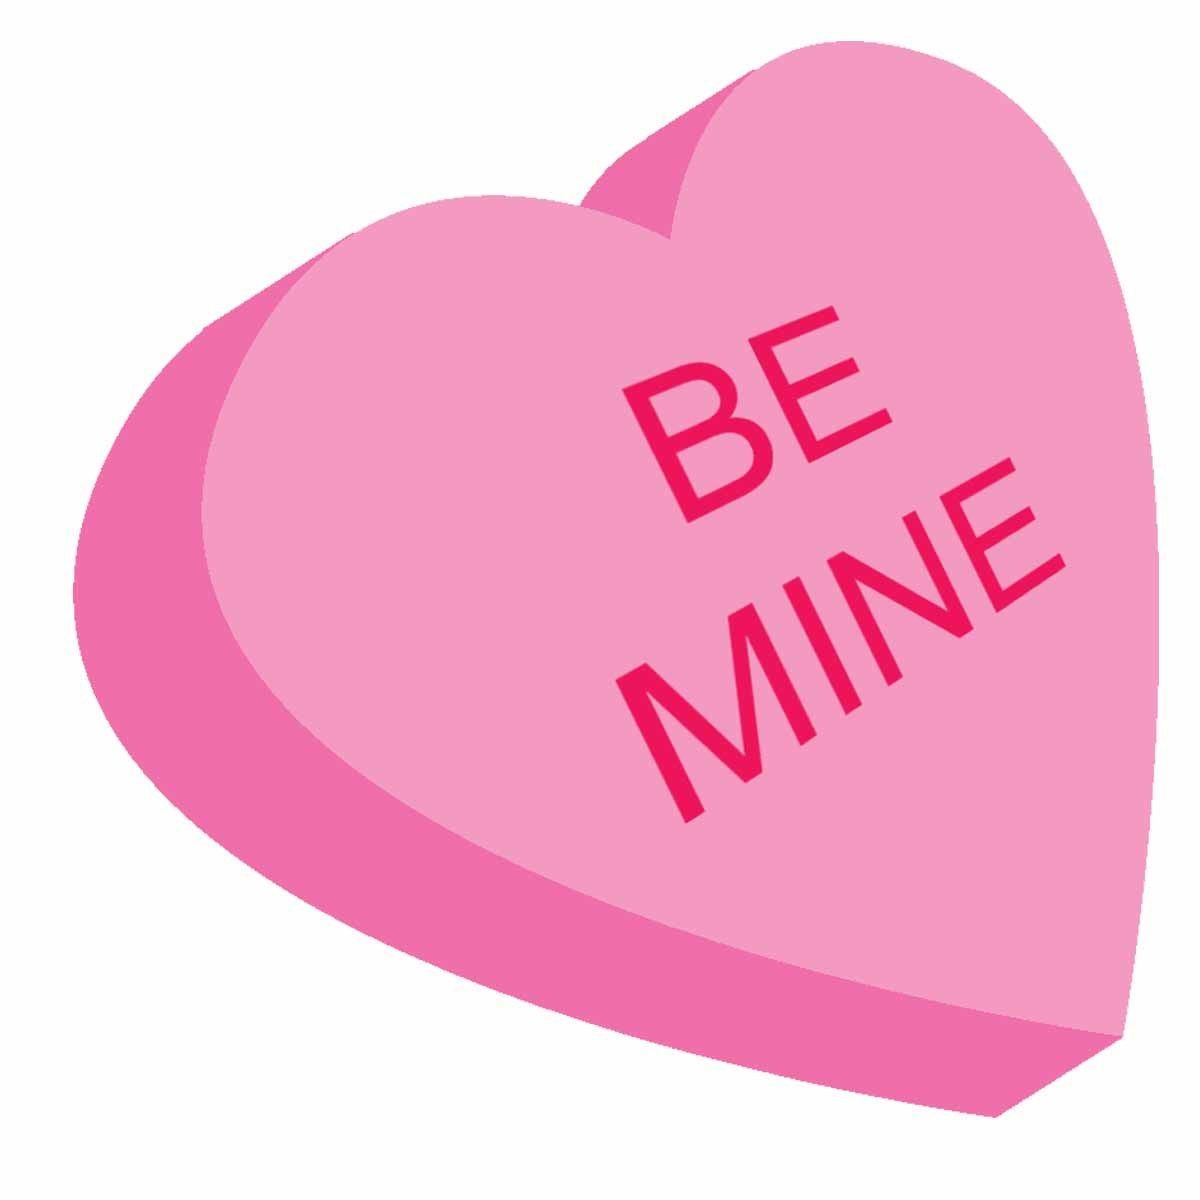 Image Valentine\'s Day Heart Candy. Candy Heart Image Is Perfect For ...